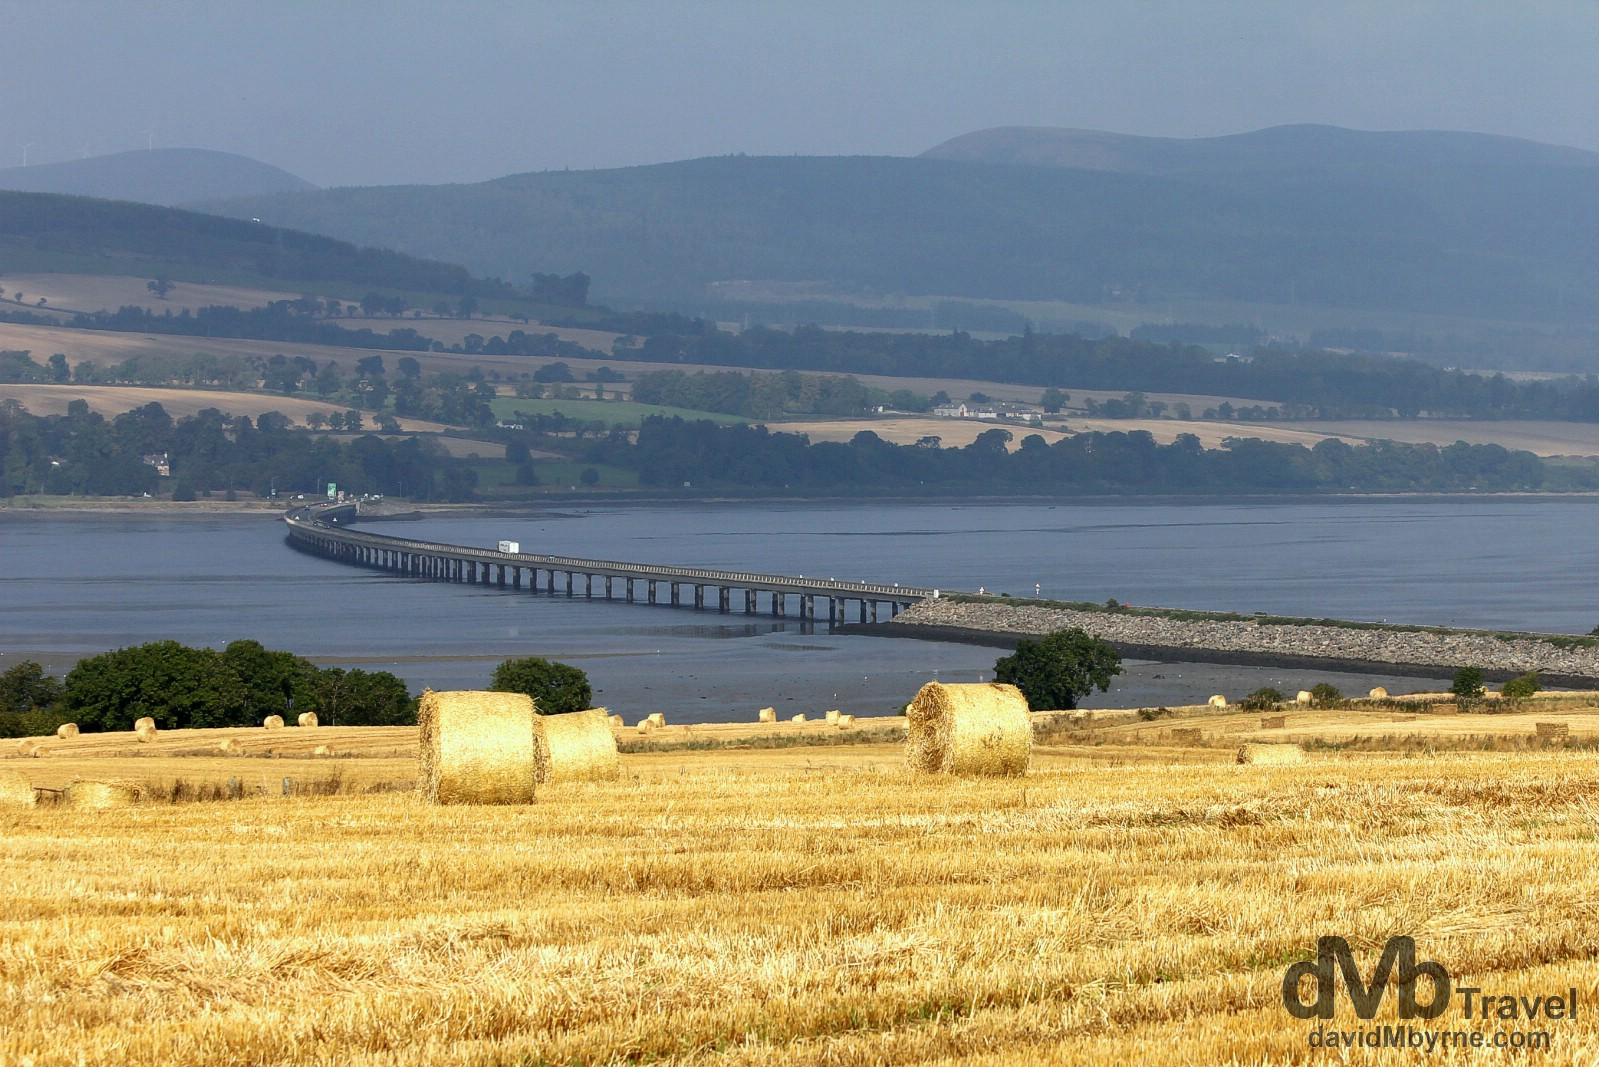 Scenery near the Comarty Bridge crossing Cromarty Forth north of Inverness in Scotland. September 14, 2014.